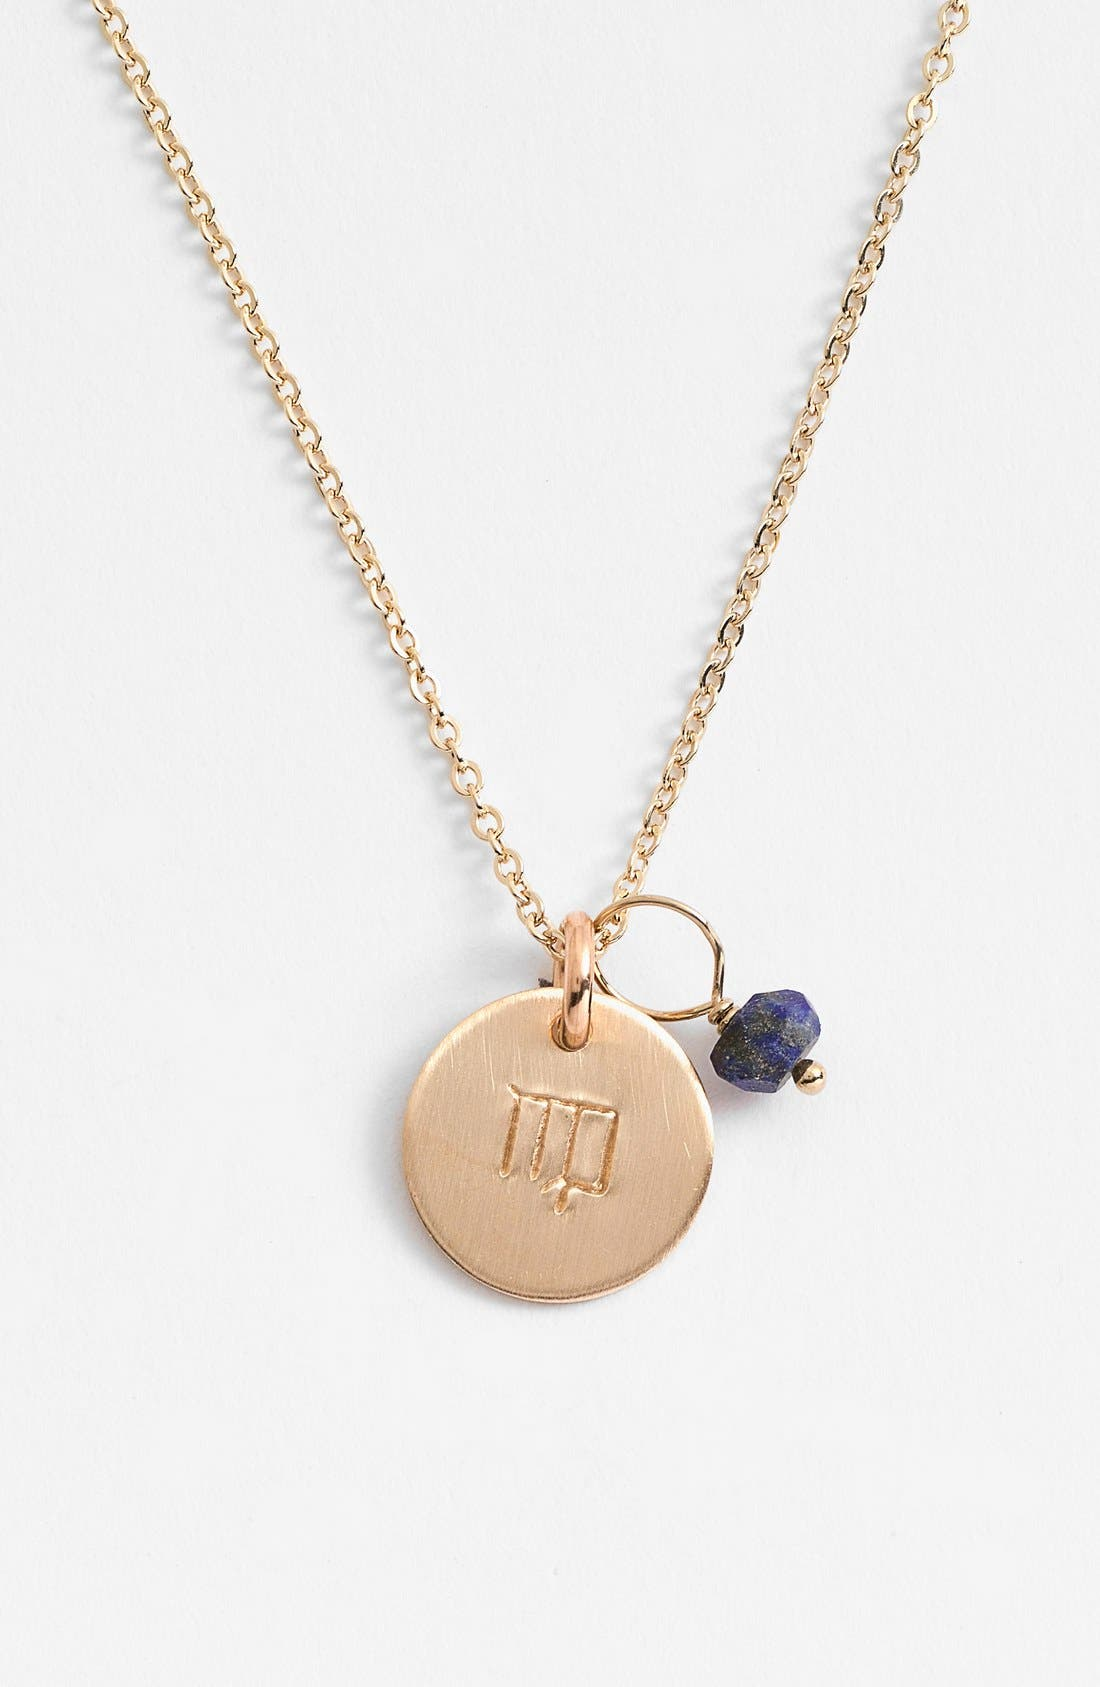 Nashelle 14k-Gold Fill & Semiprecious Birthstone Zodiac Mini Disc Necklace